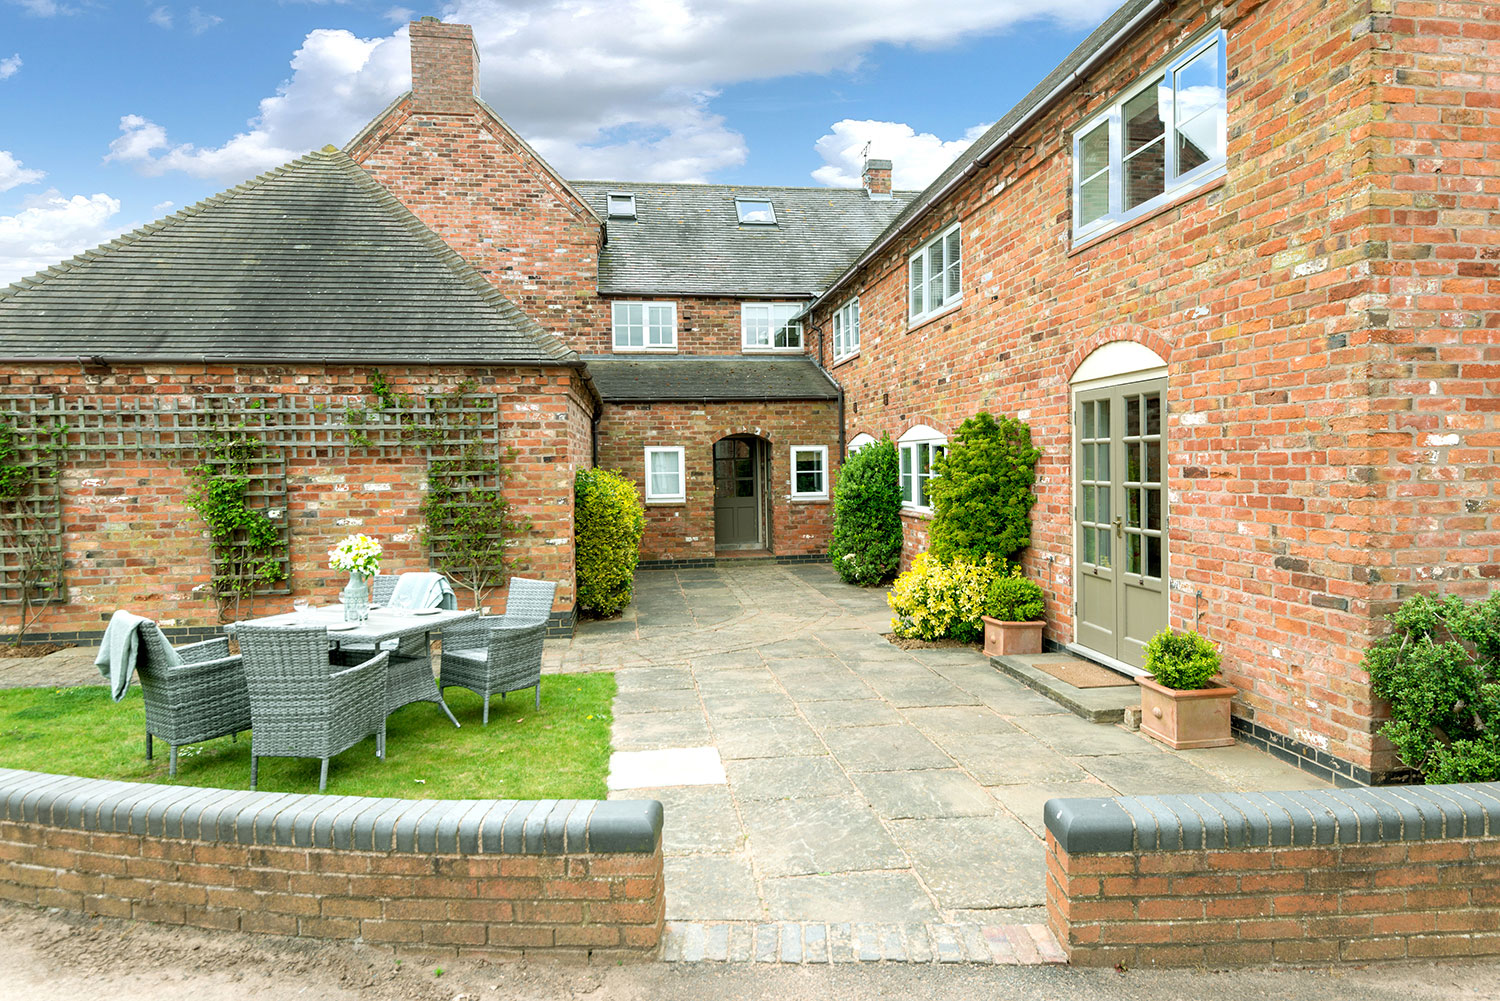 Holiday accommodation with private garden in central England | Upper Rectory Farm Cottages